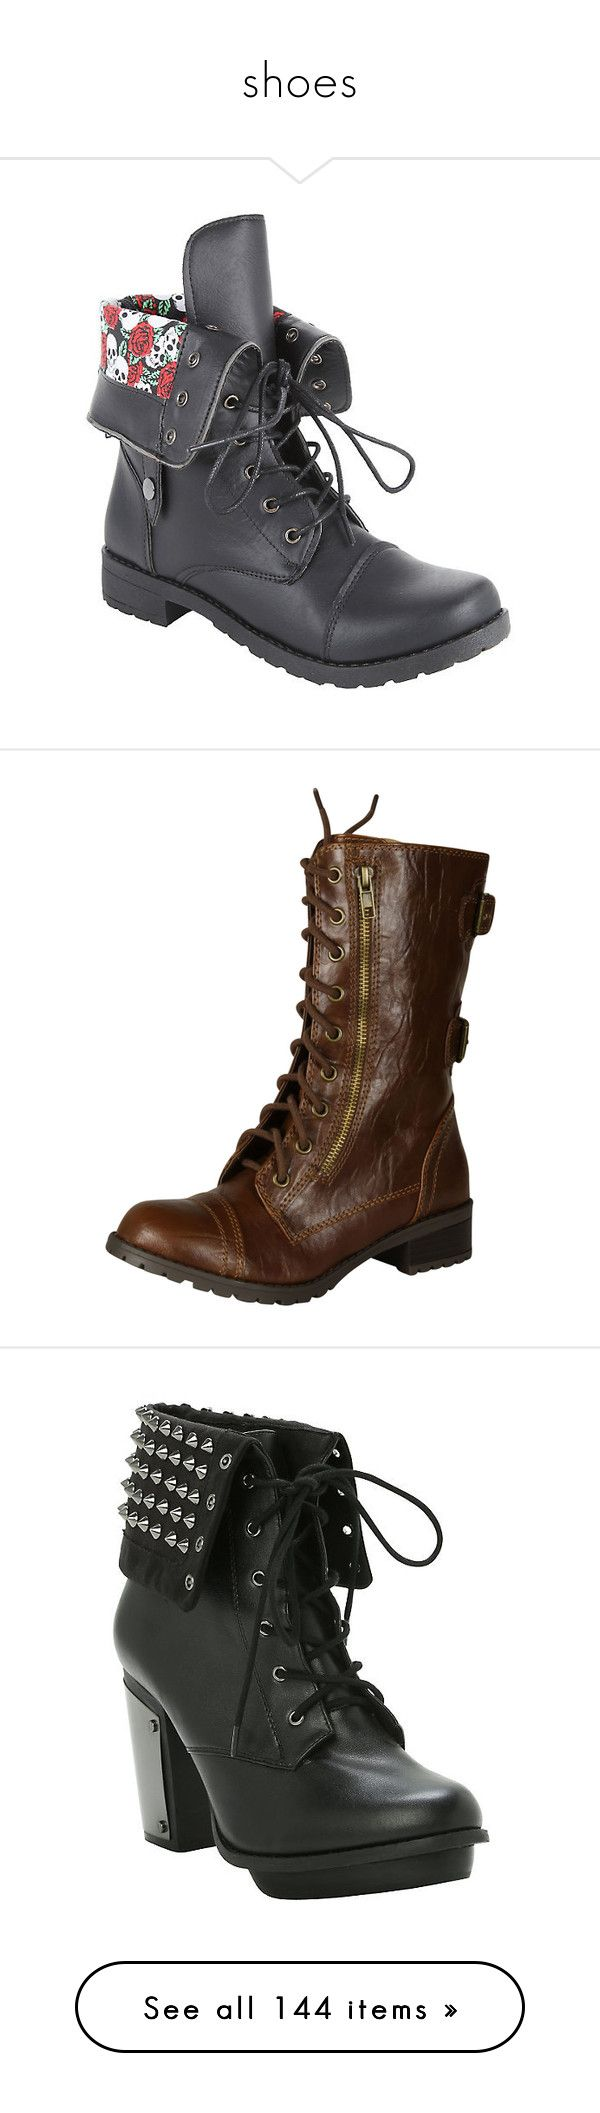 """""""shoes"""" by jcseagreen ❤ liked on Polyvore featuring shoes, boots, hot topic, army combat boots, lace up combat boots, combat booties, fold-over combat boots, lace up boots, beige and beige boots"""